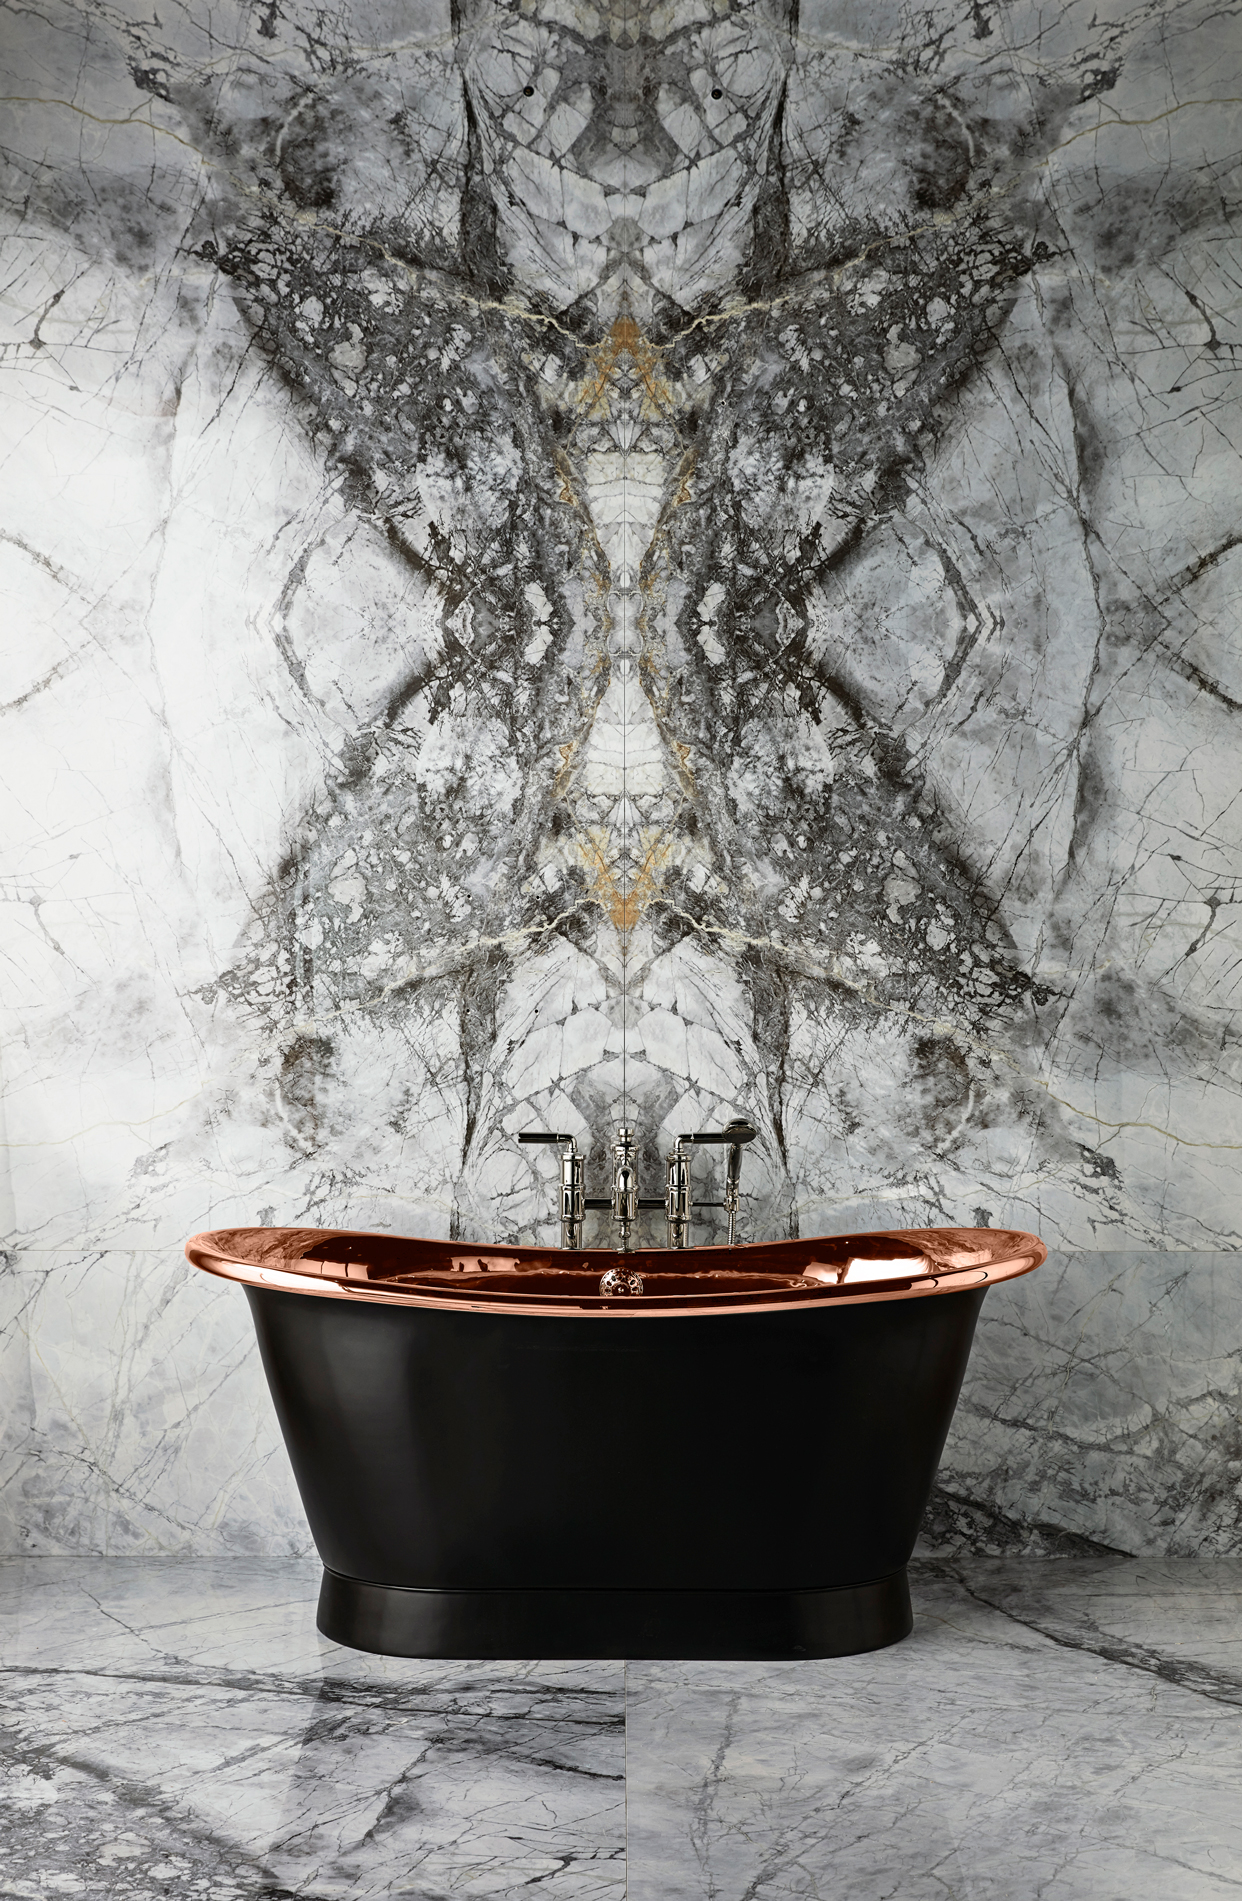 The Baby Tyne Copper Bath Tub With Painted Exterior